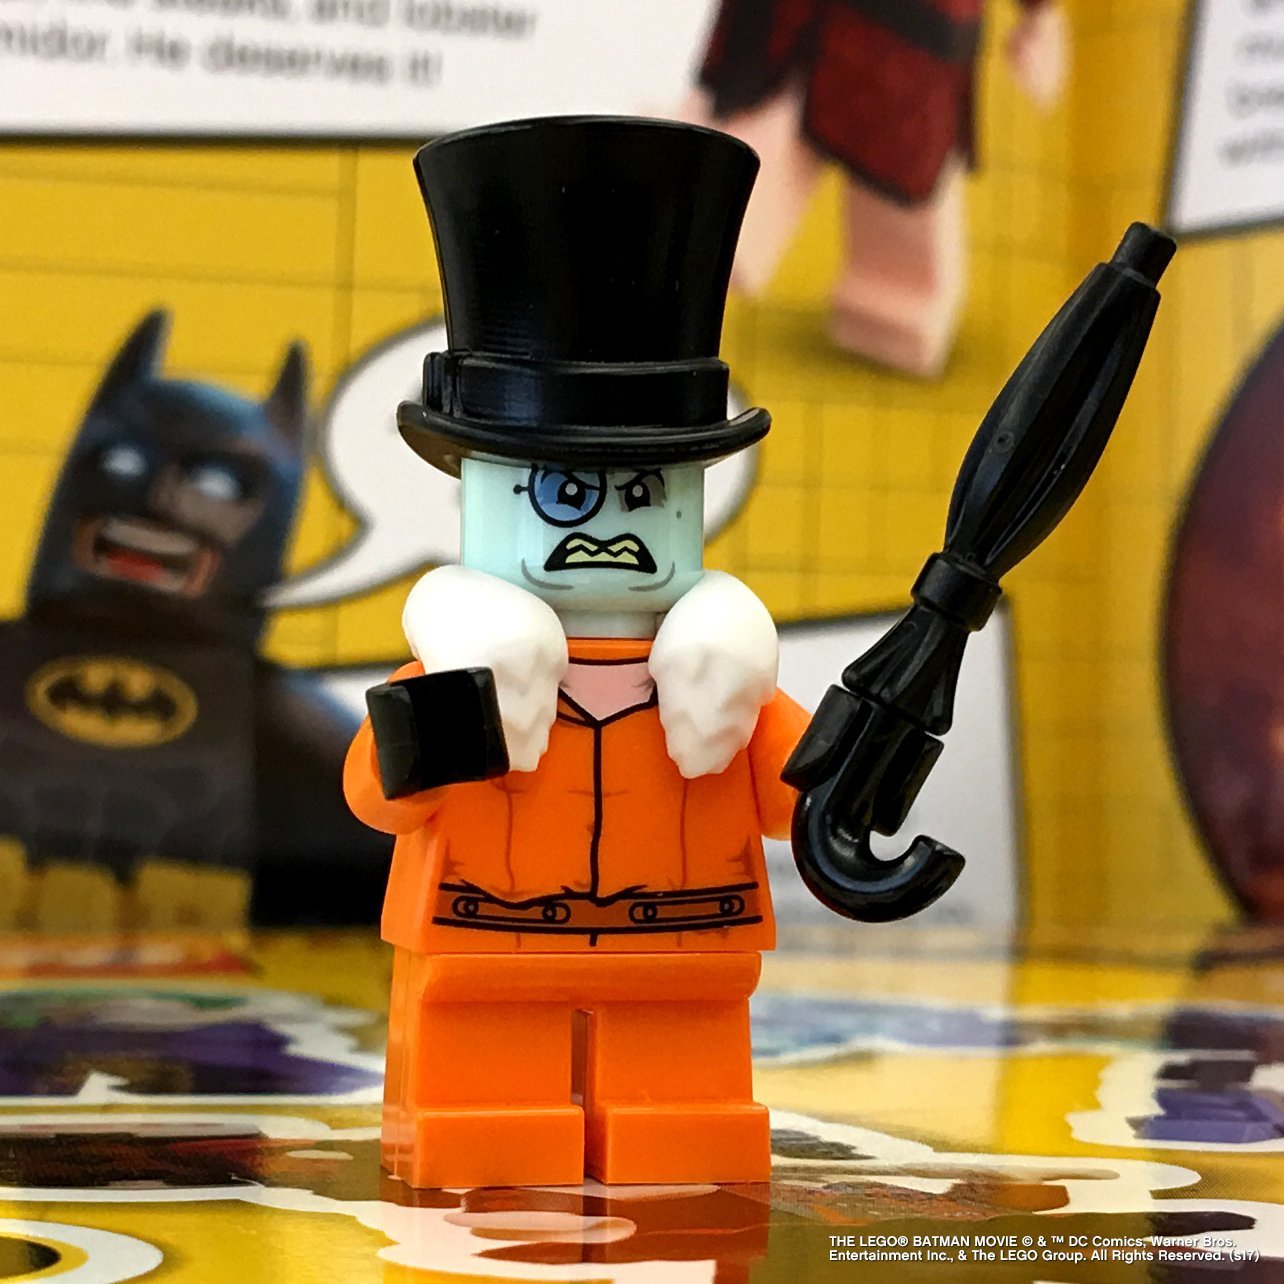 Exclusive LEGO Penguin Minifigure